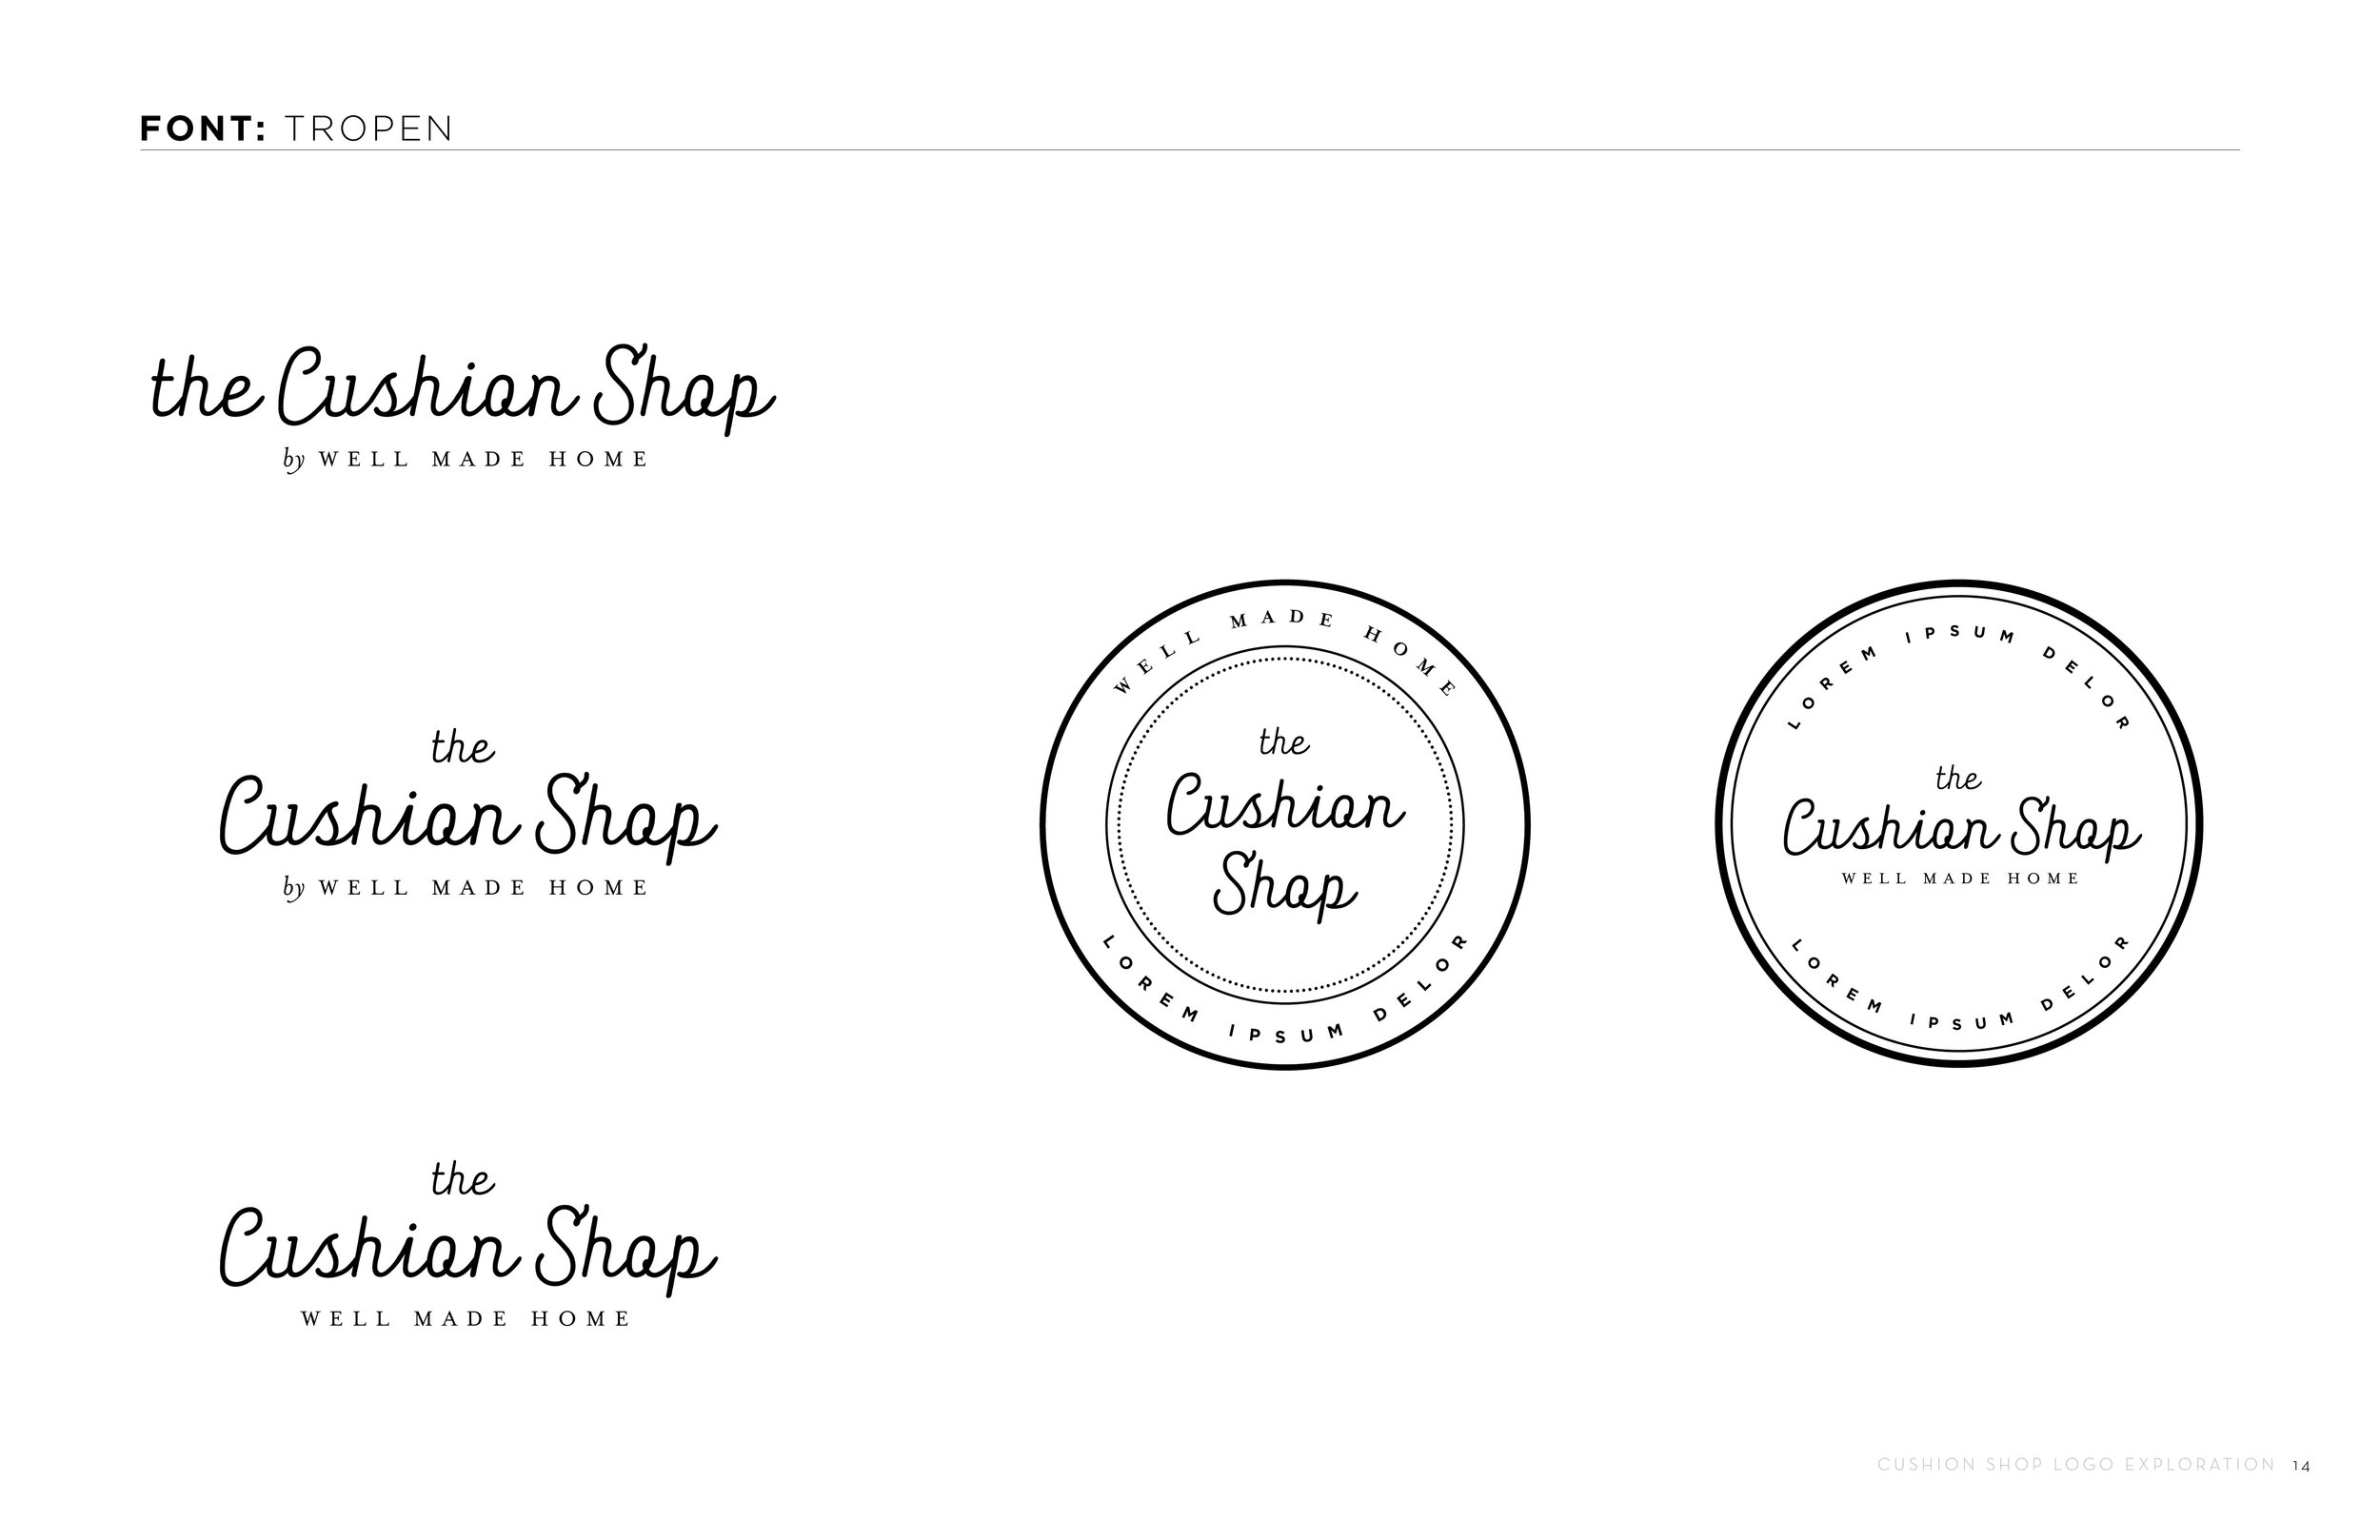 Cushion Shop_Logo Concepts_R10_14.jpg